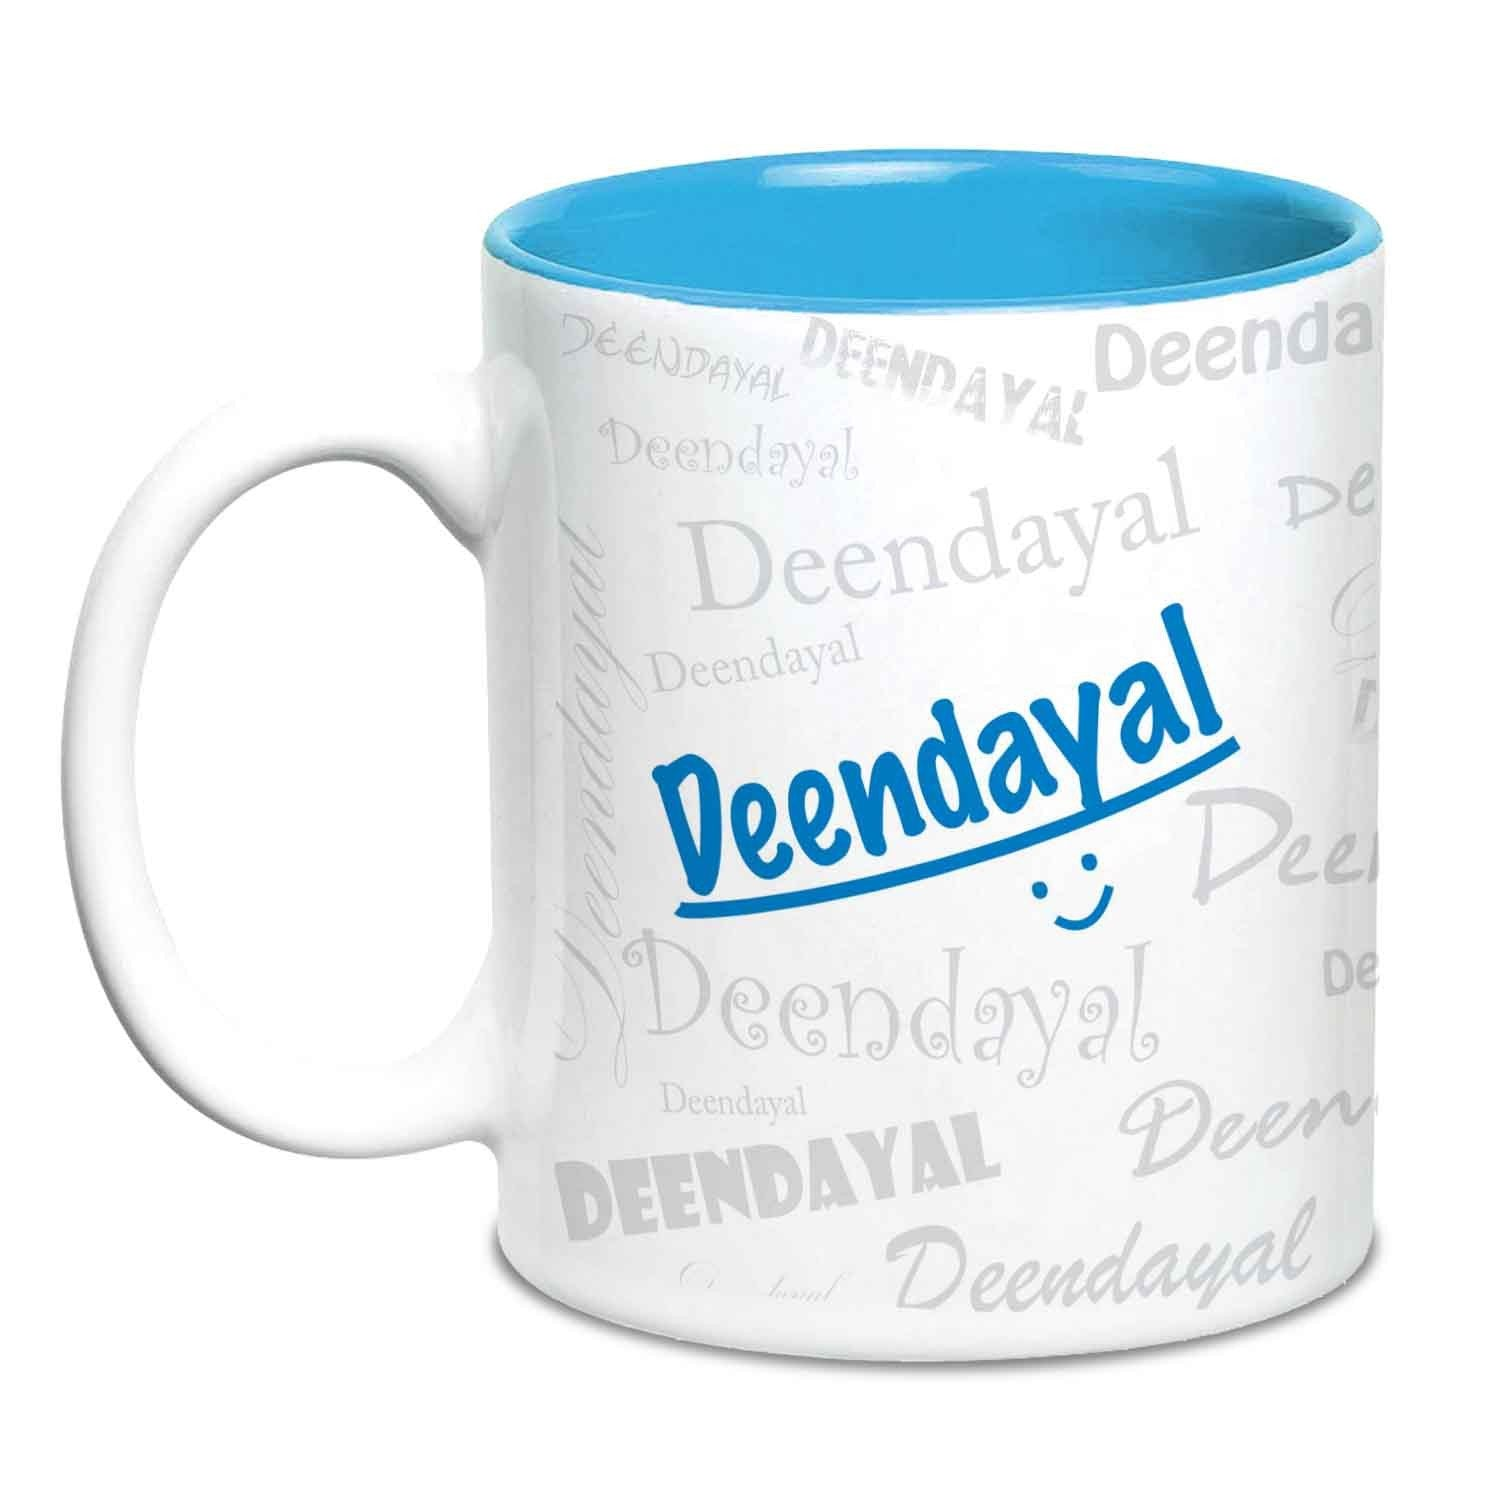 Me Graffiti Mug - Deendayal